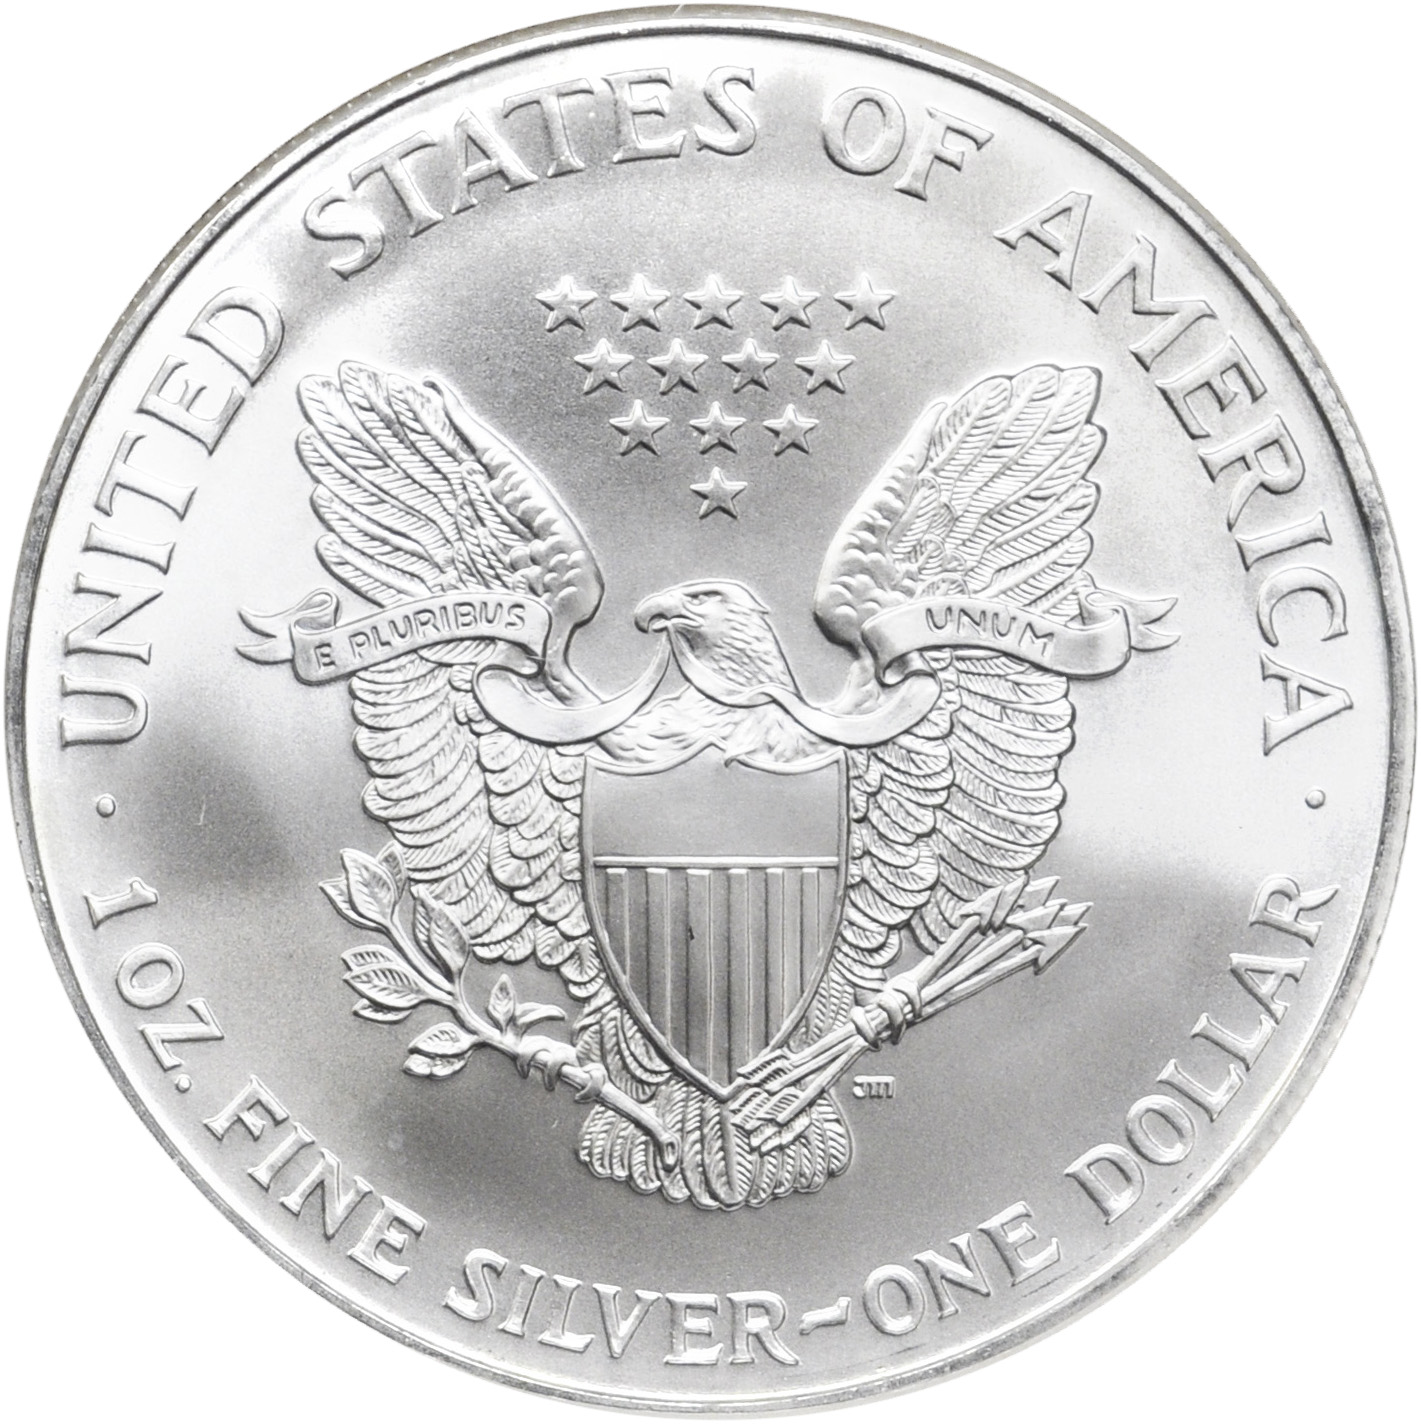 Value of 1998 $1 Silver Coin | American Silver Eagle Coin